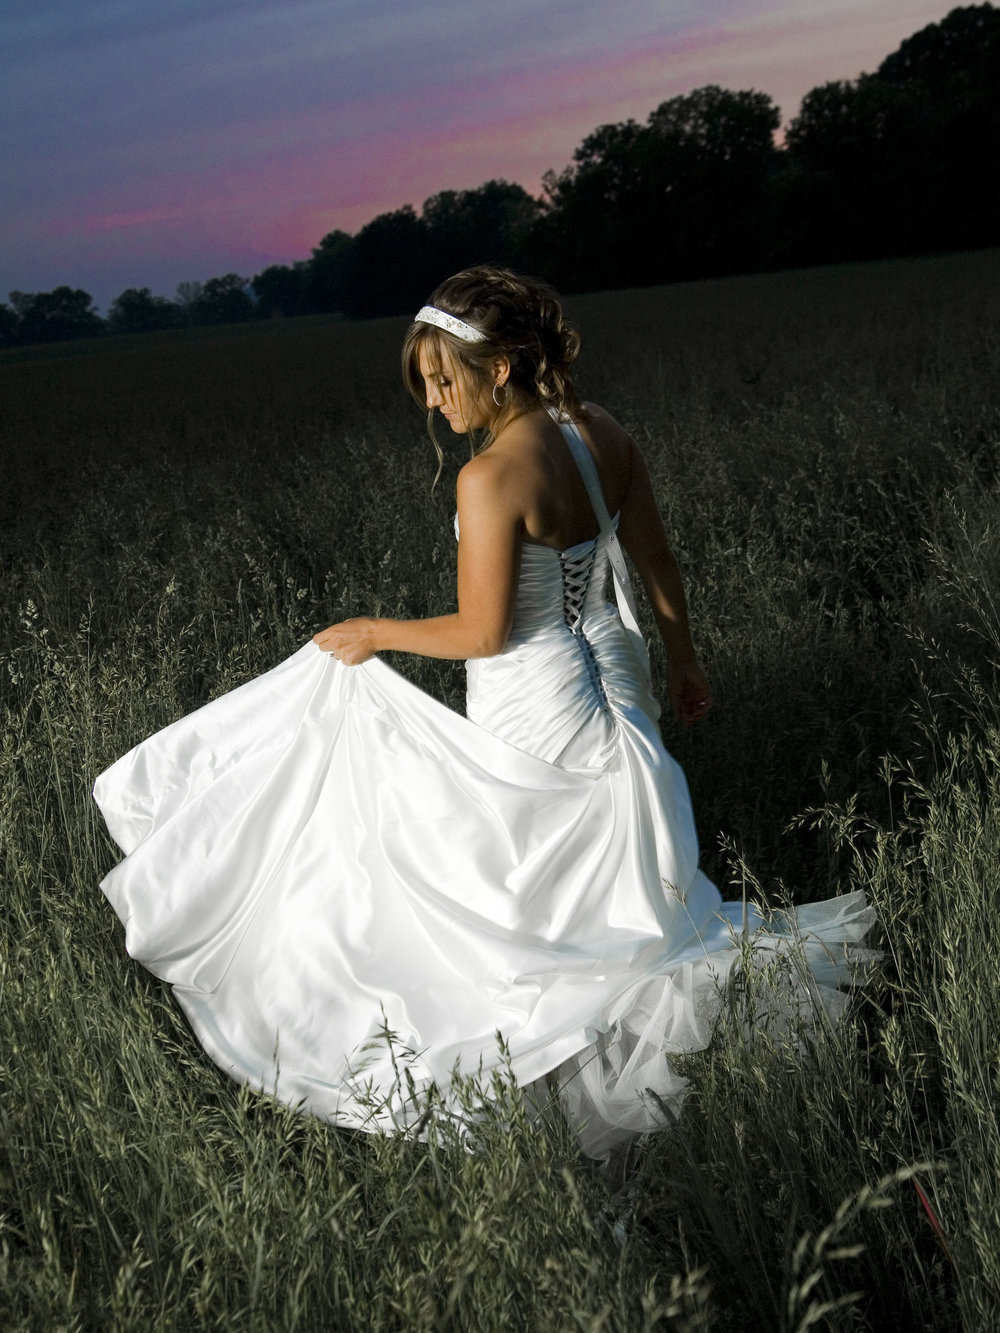 Bride-Holding-Dress-With-Pink-Sky-Behind-Her.jpg